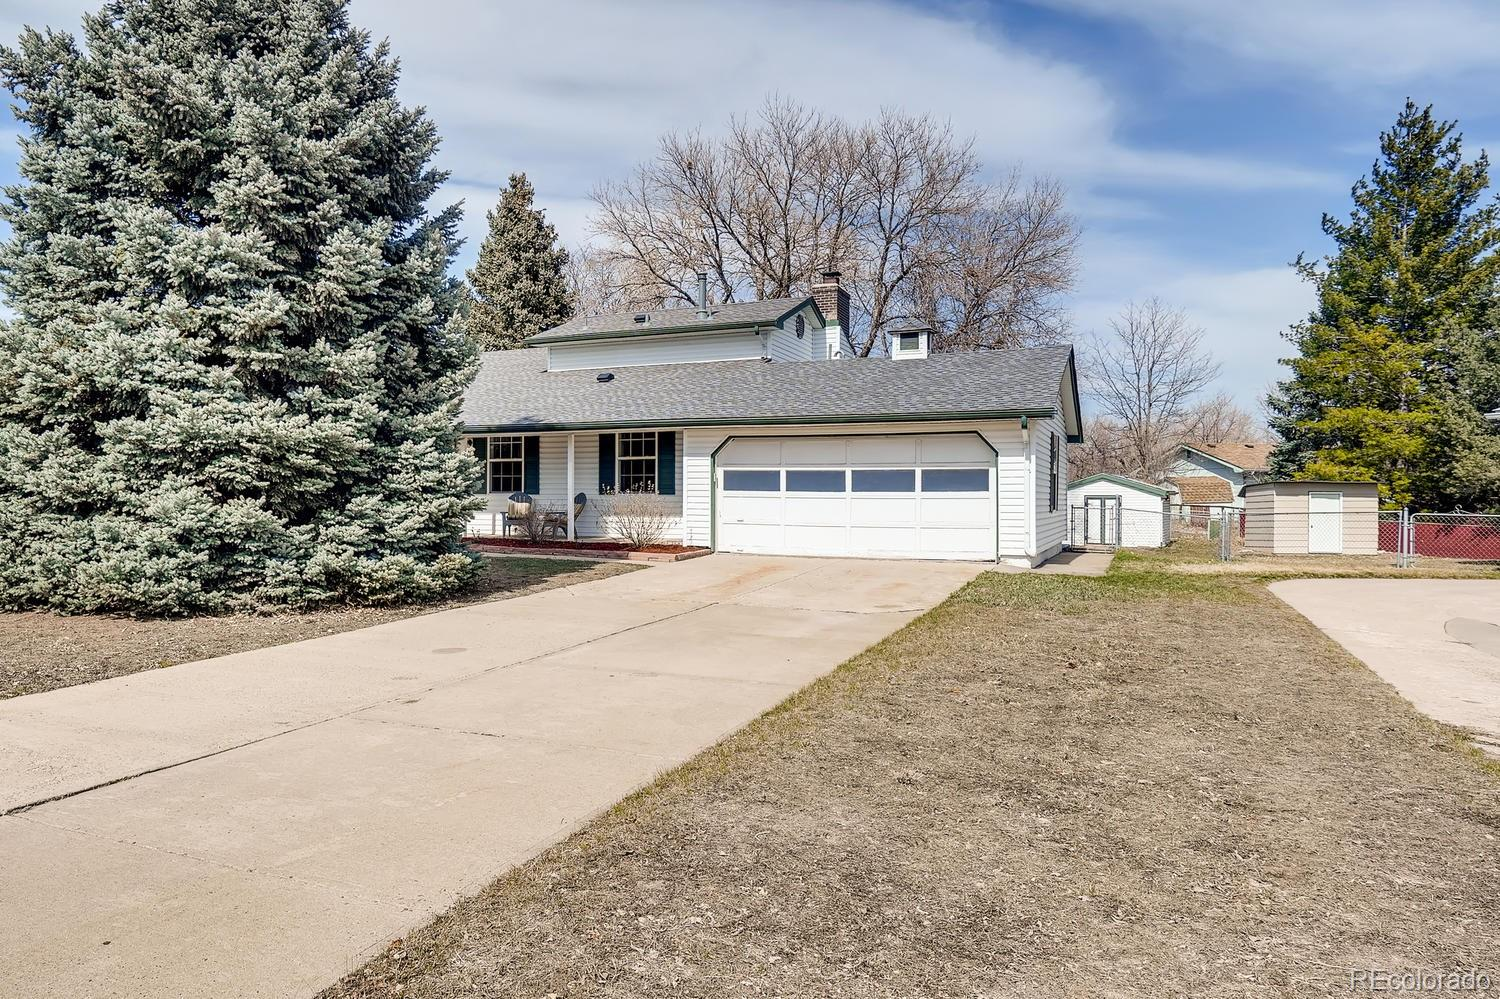 MLS# 4216362 - 2 - 6872 Marshall Street, Arvada, CO 80003